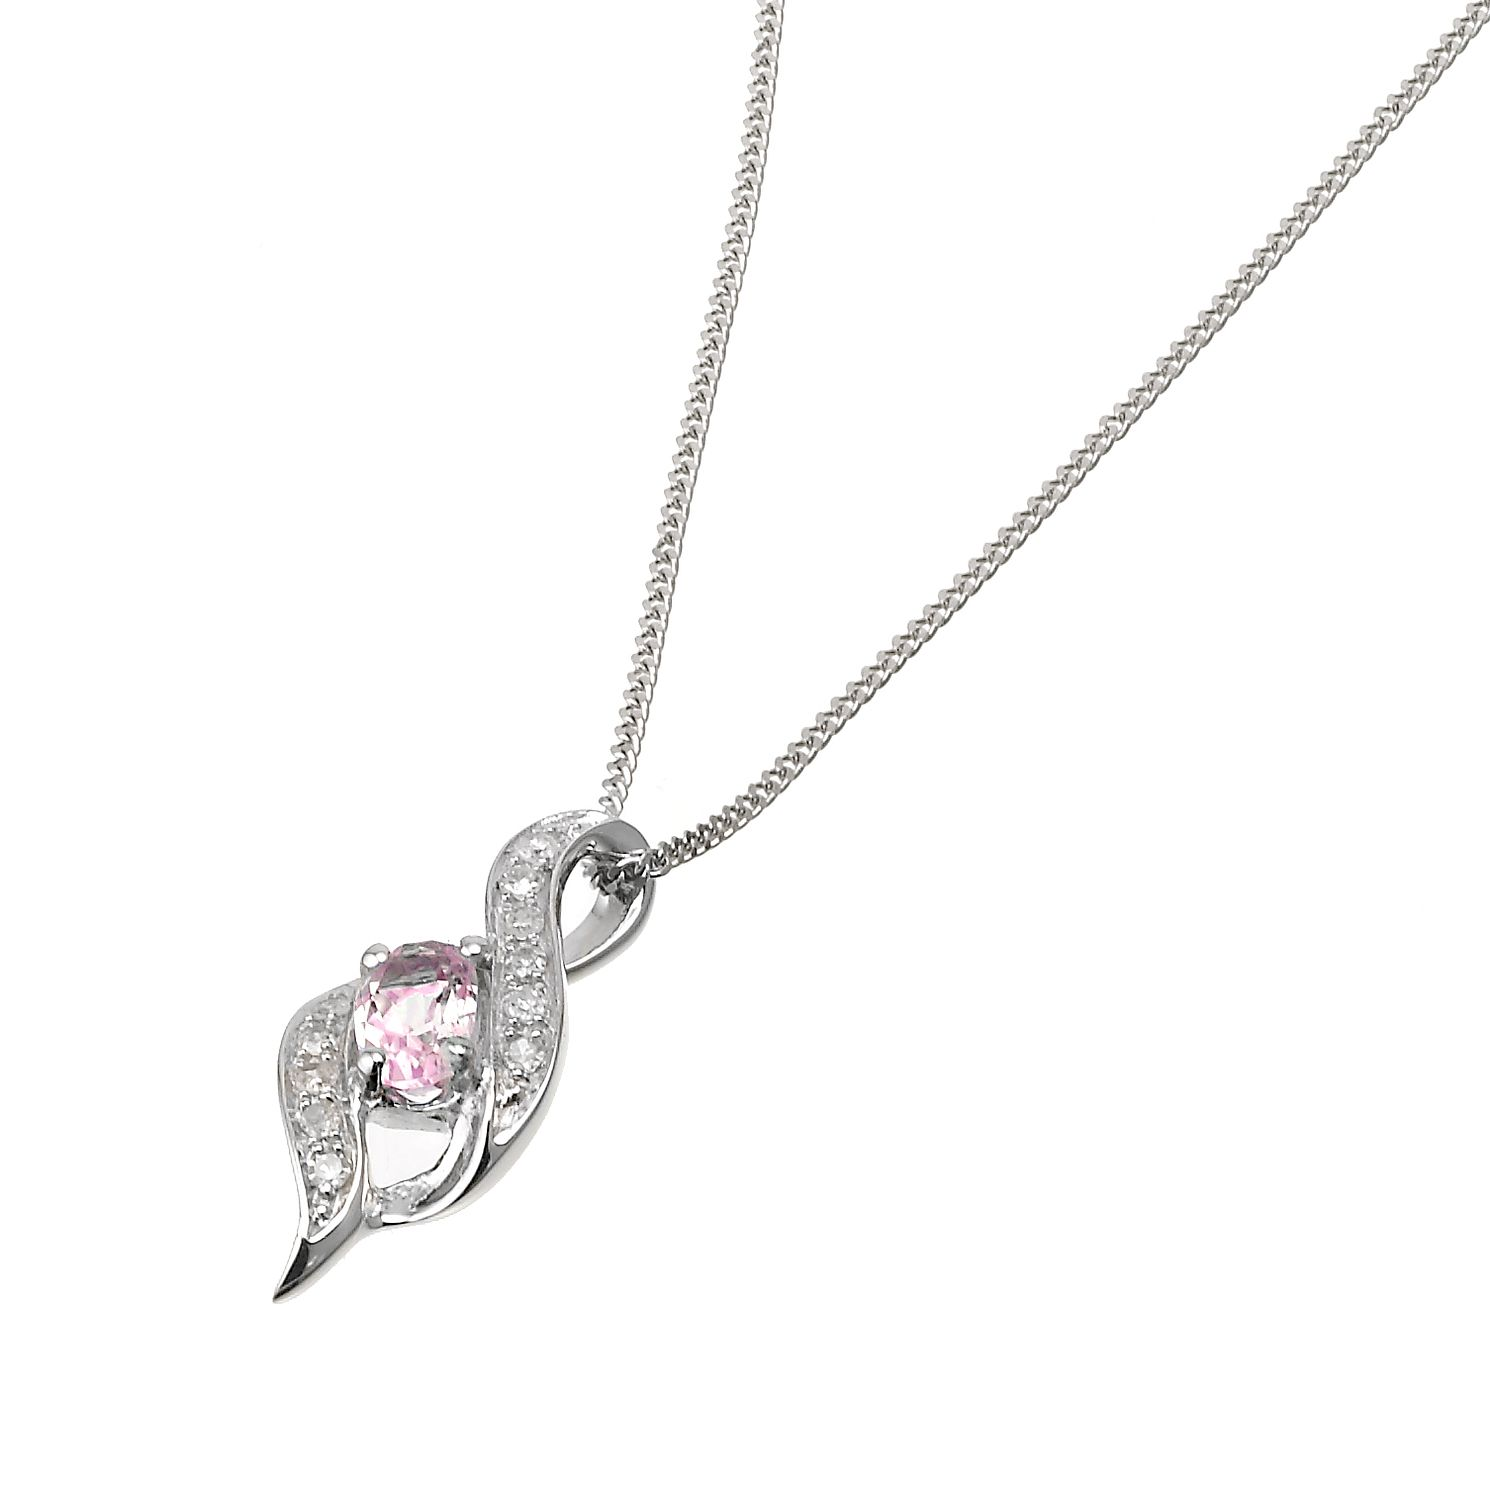 necklace en kaystore clearance sapphire diamond journey kay amp mv pink zm natural